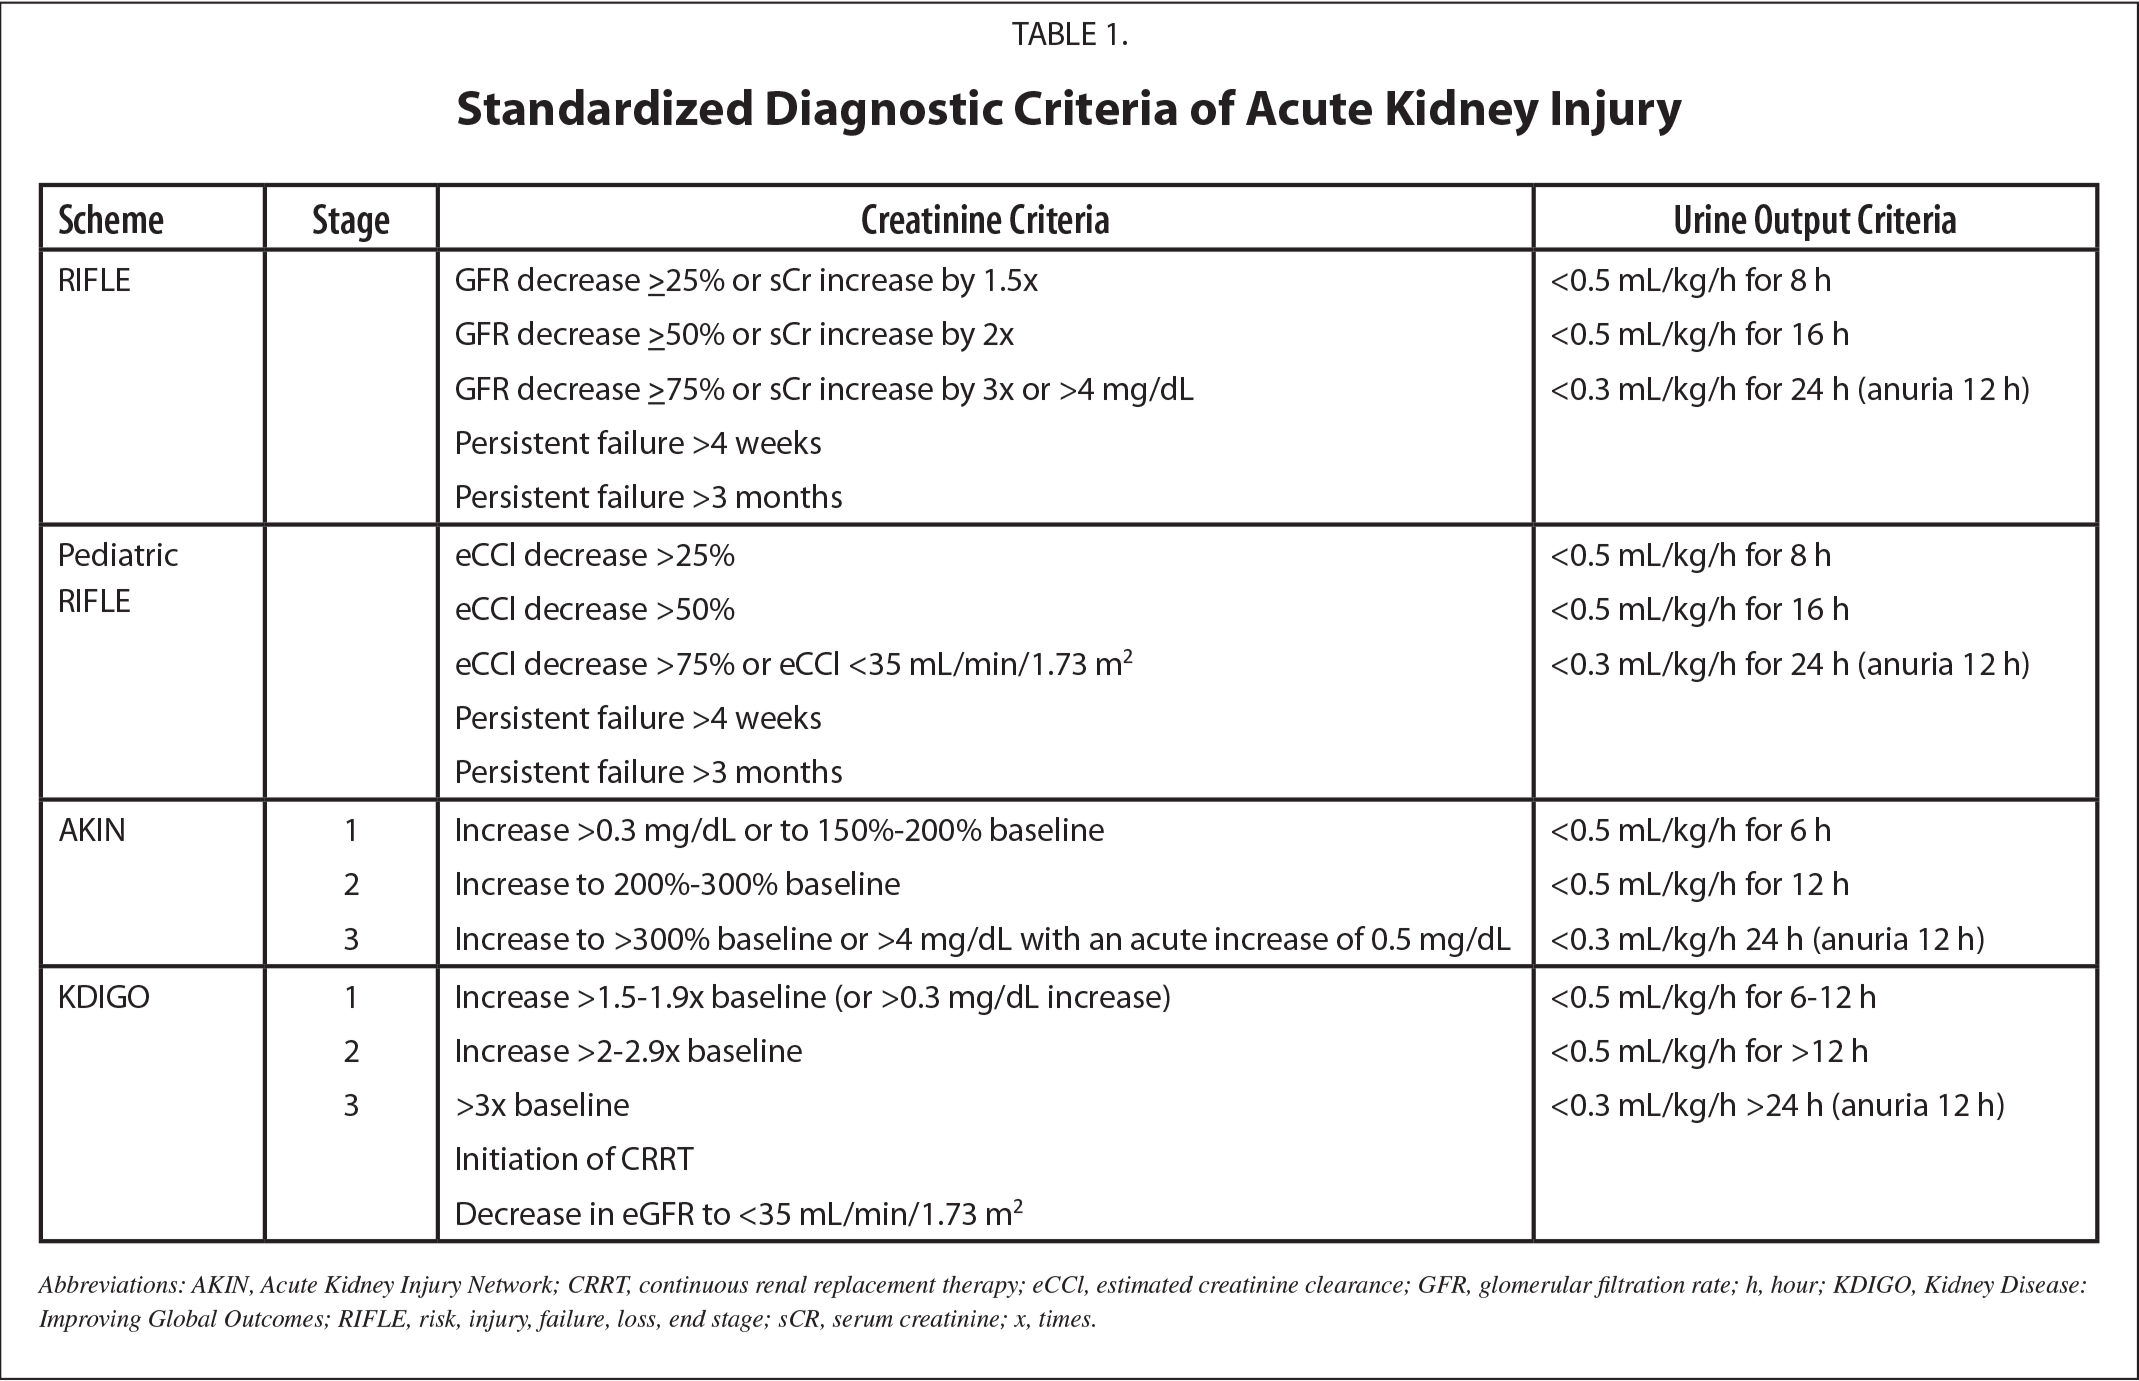 Standardized Diagnostic Criteria of Acute Kidney Injury